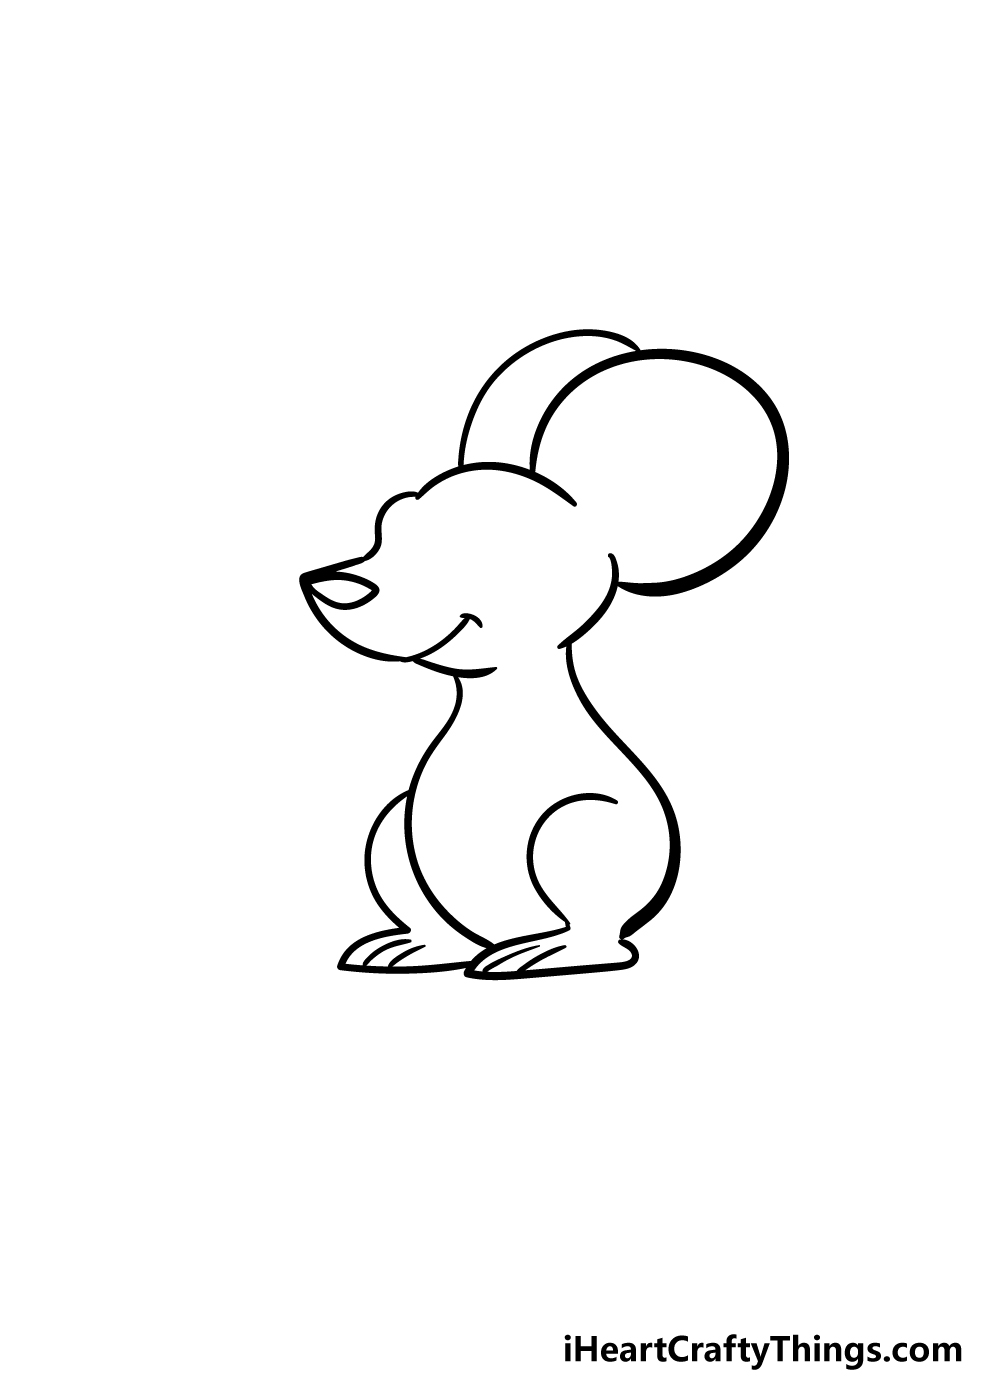 mouse drawing step 4